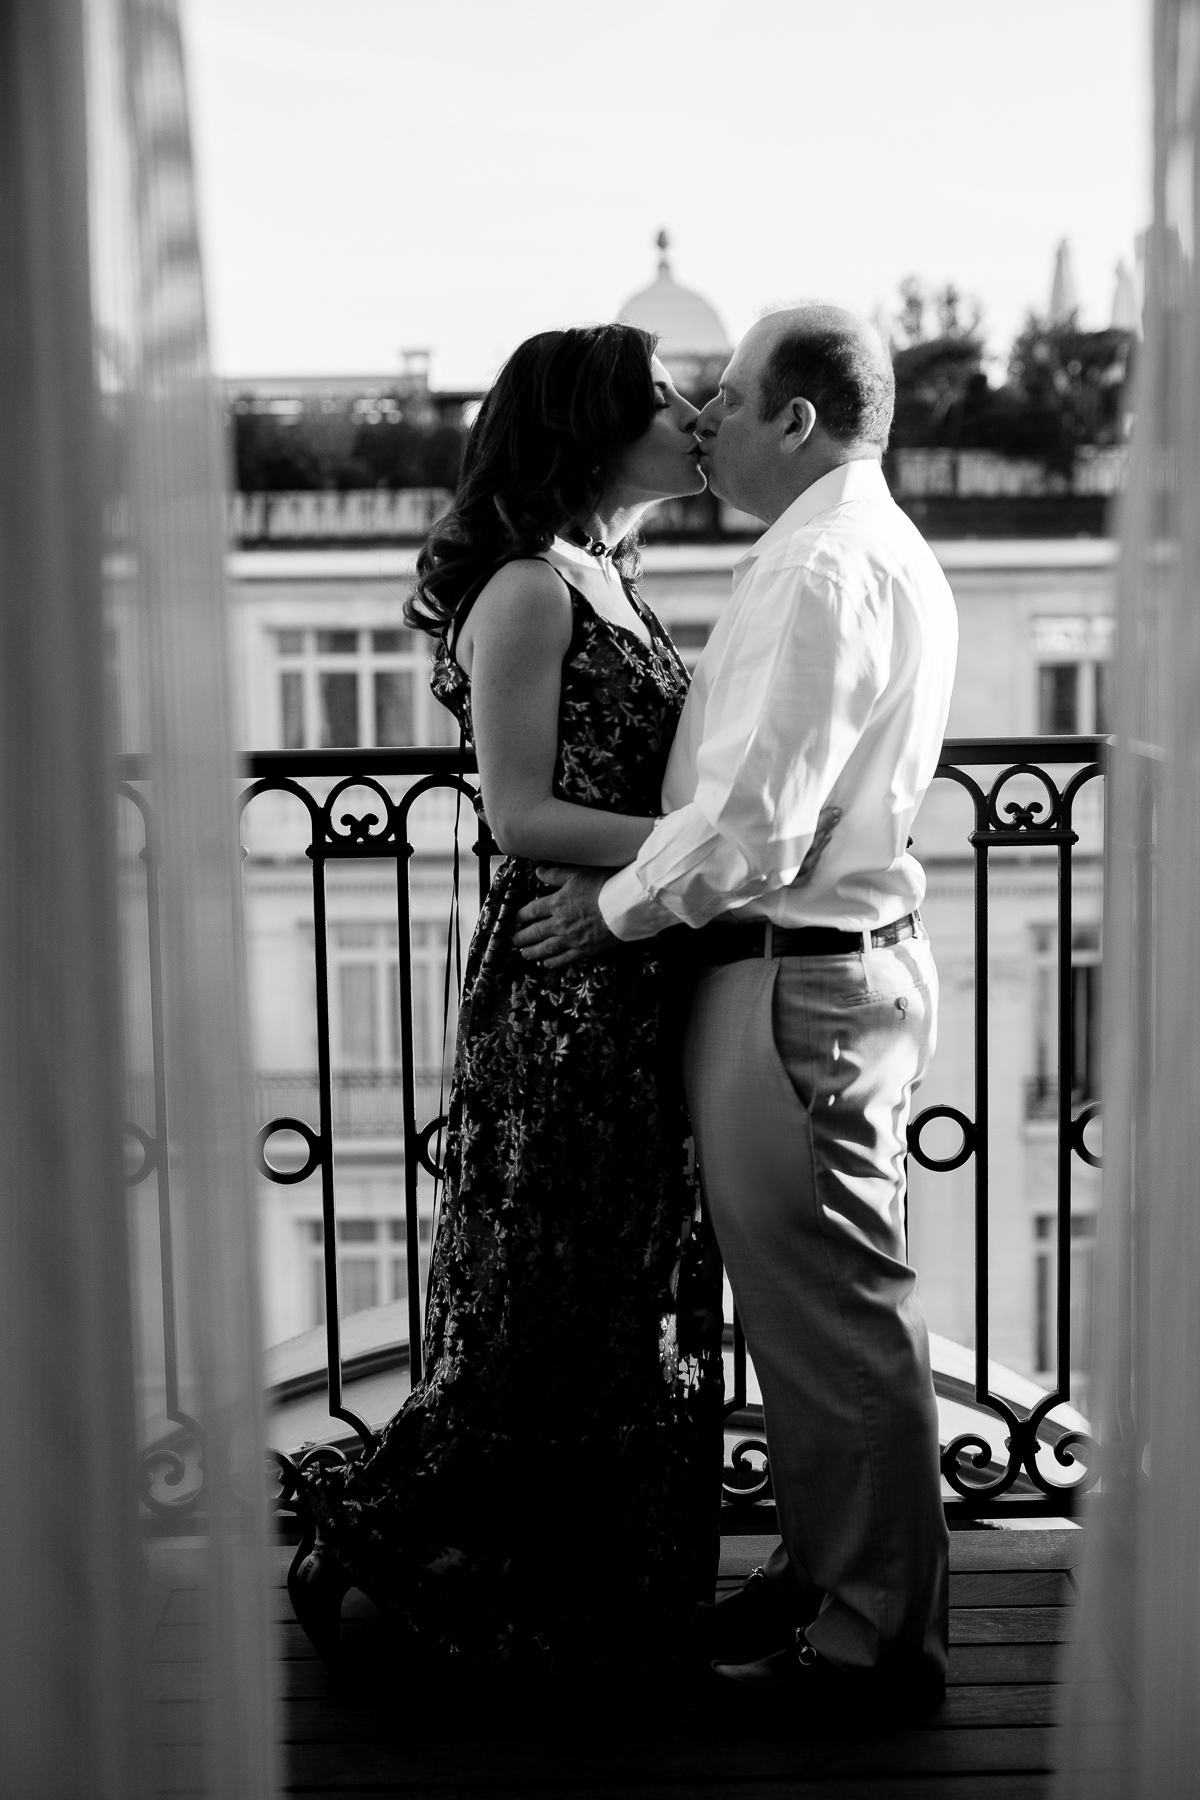 parisian_couple-portraits-le-penninsula-hotel-paris-centre-katie-donnelly-photography_008.jpg